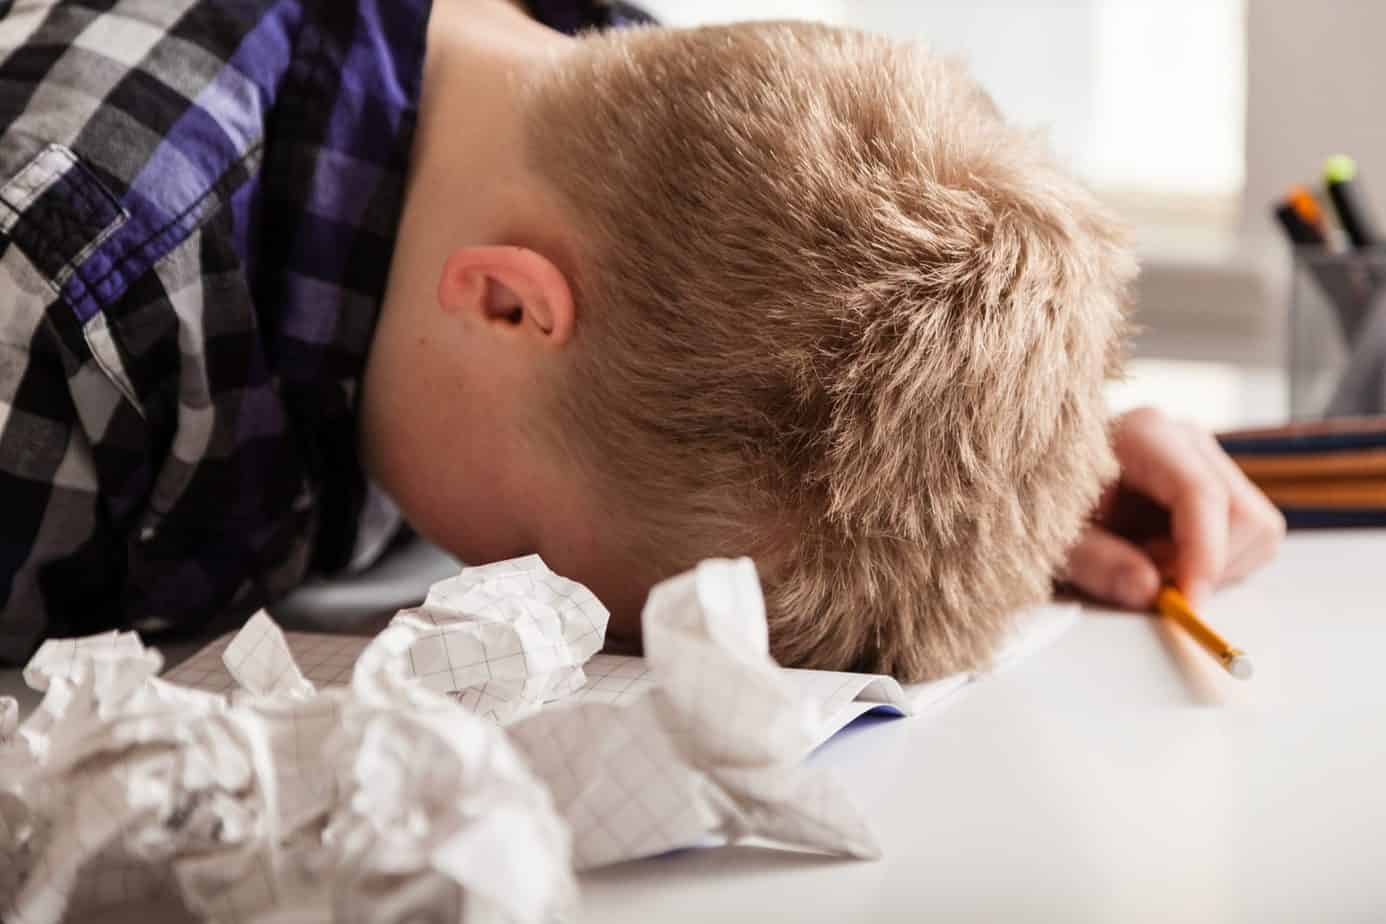 Young boy struggling with his homework sitting with his head down on the table surrounded by crumpled pages of screwed up paper